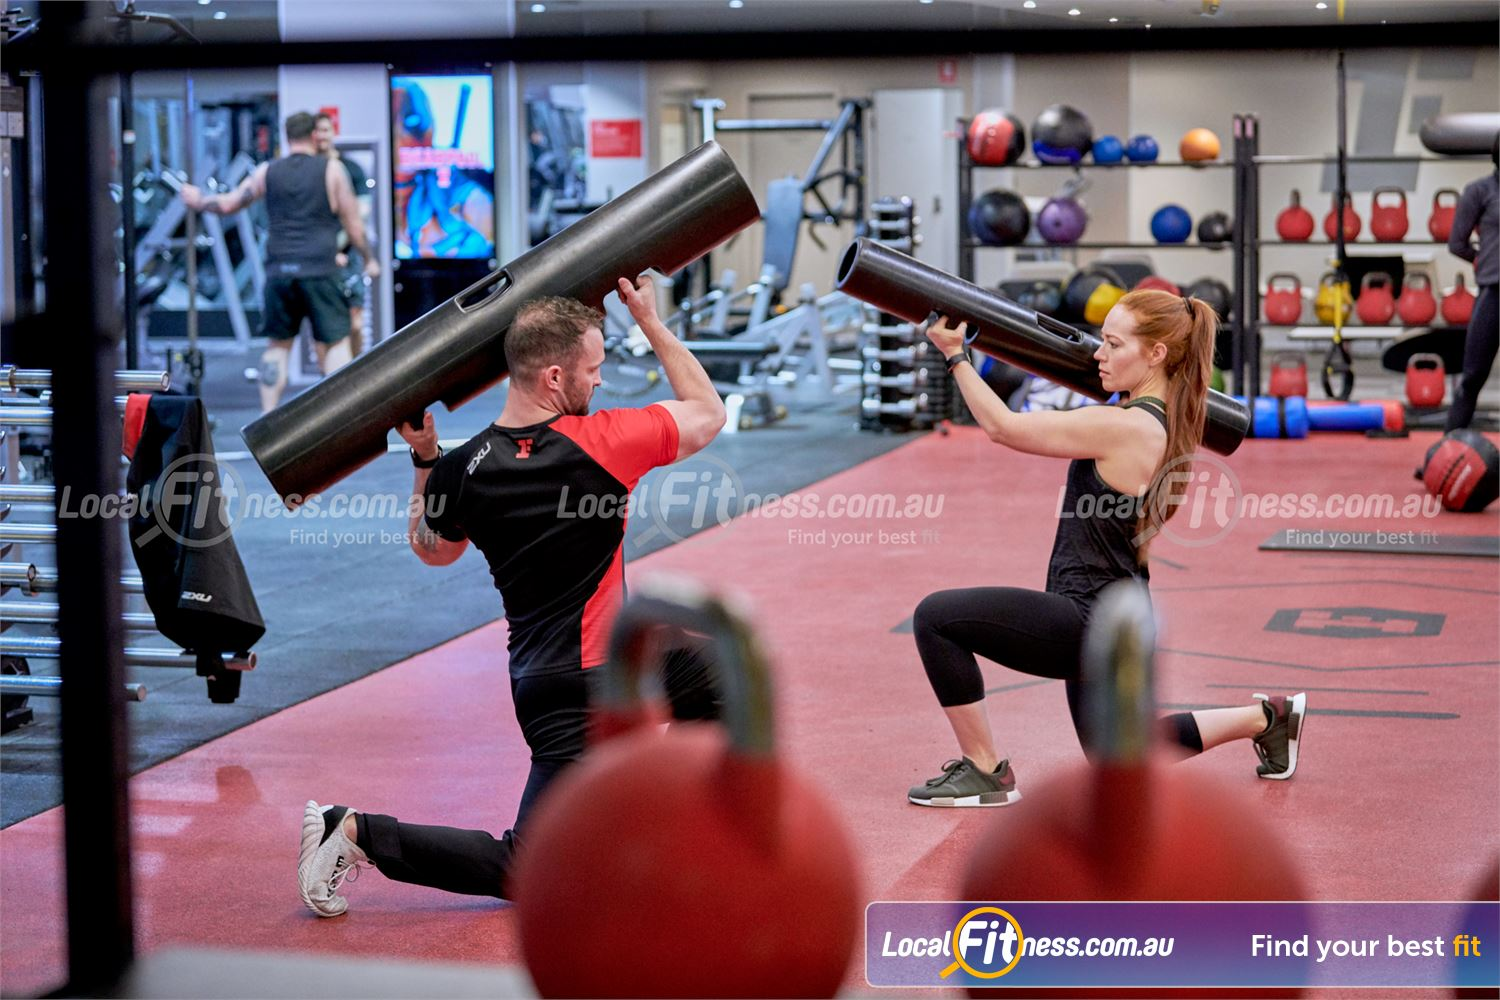 Fitness First Victoria Gardens Near Toorak Get into ViPR training at Fitness First Richmond gym.